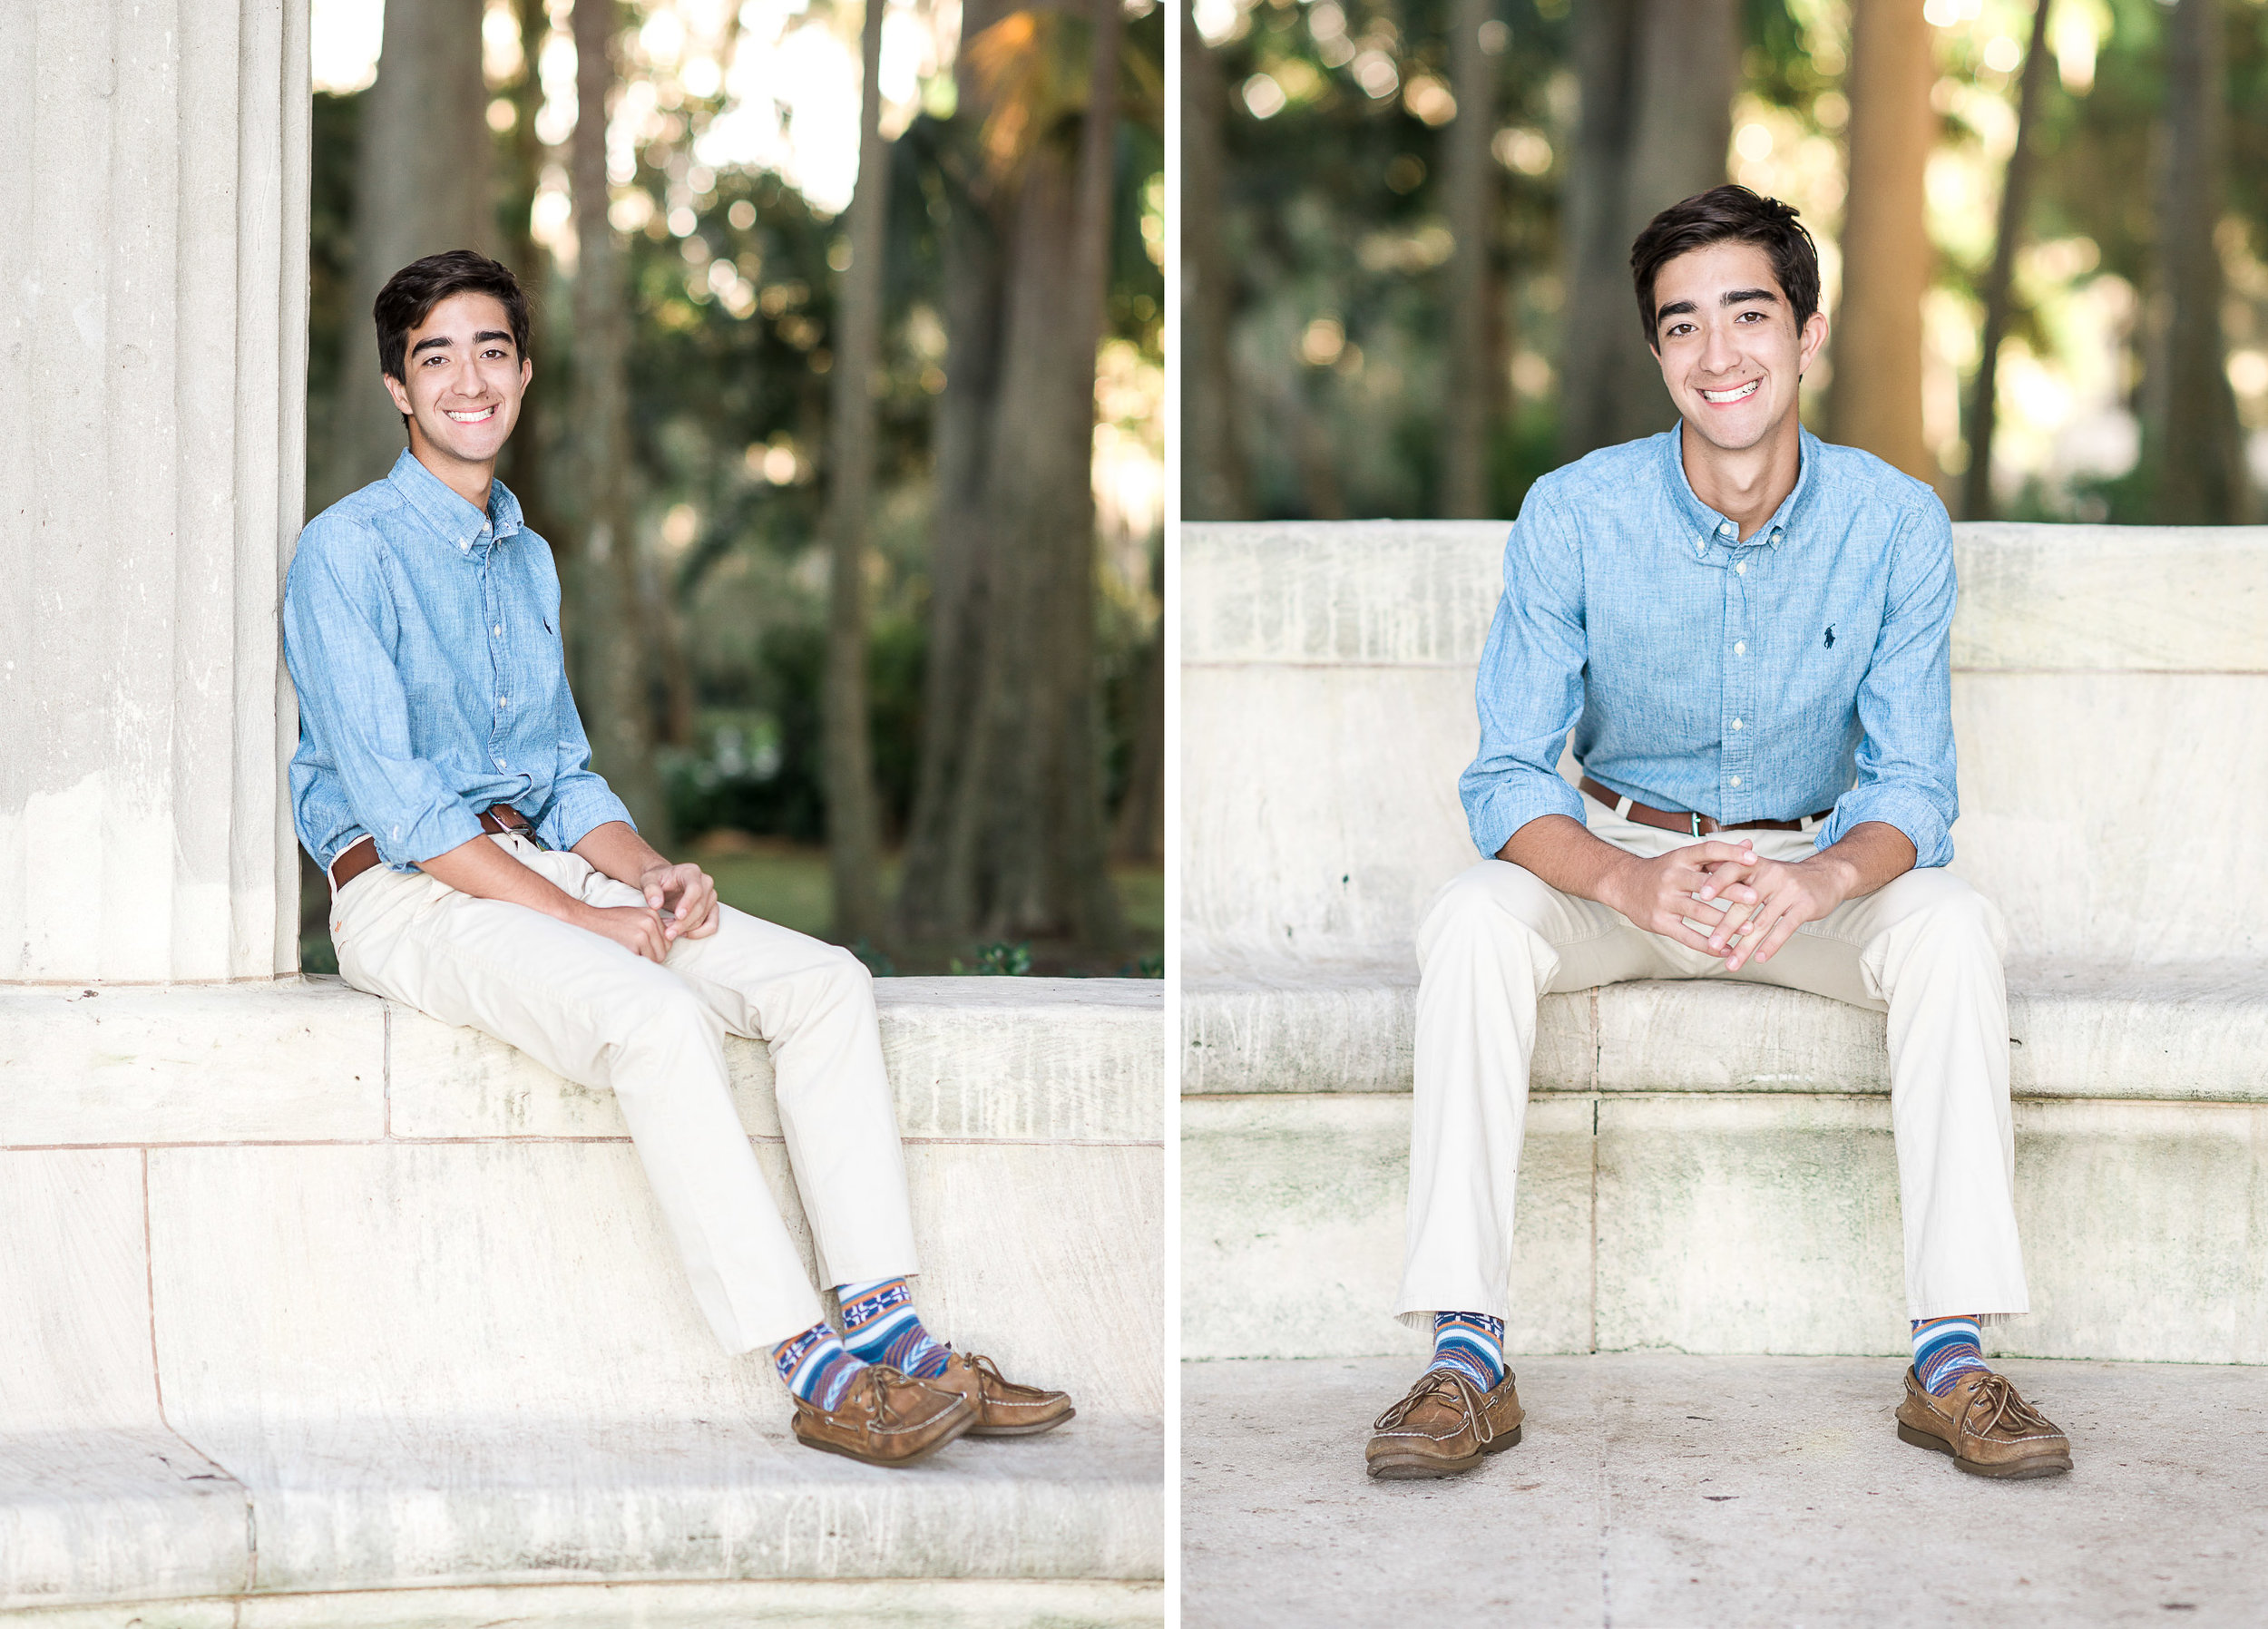 KateTaramykinStudios-Winter-Park-Senior-Portraits-Alex-1.jpg